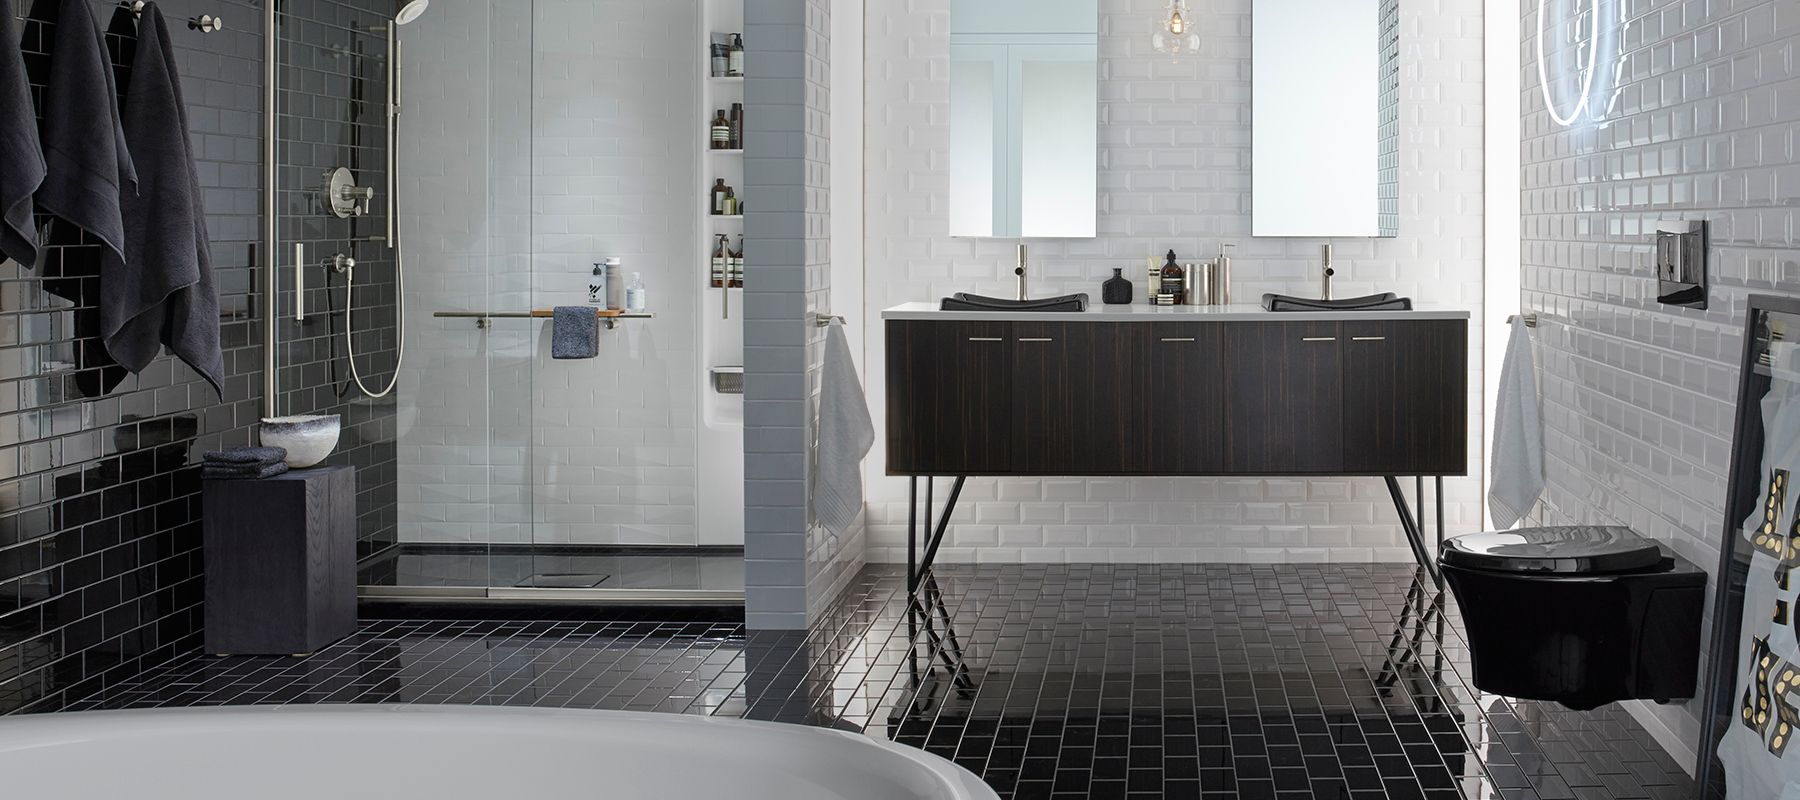 Bathroom Accessories Pics bathroom accessories | bathroom | kohler